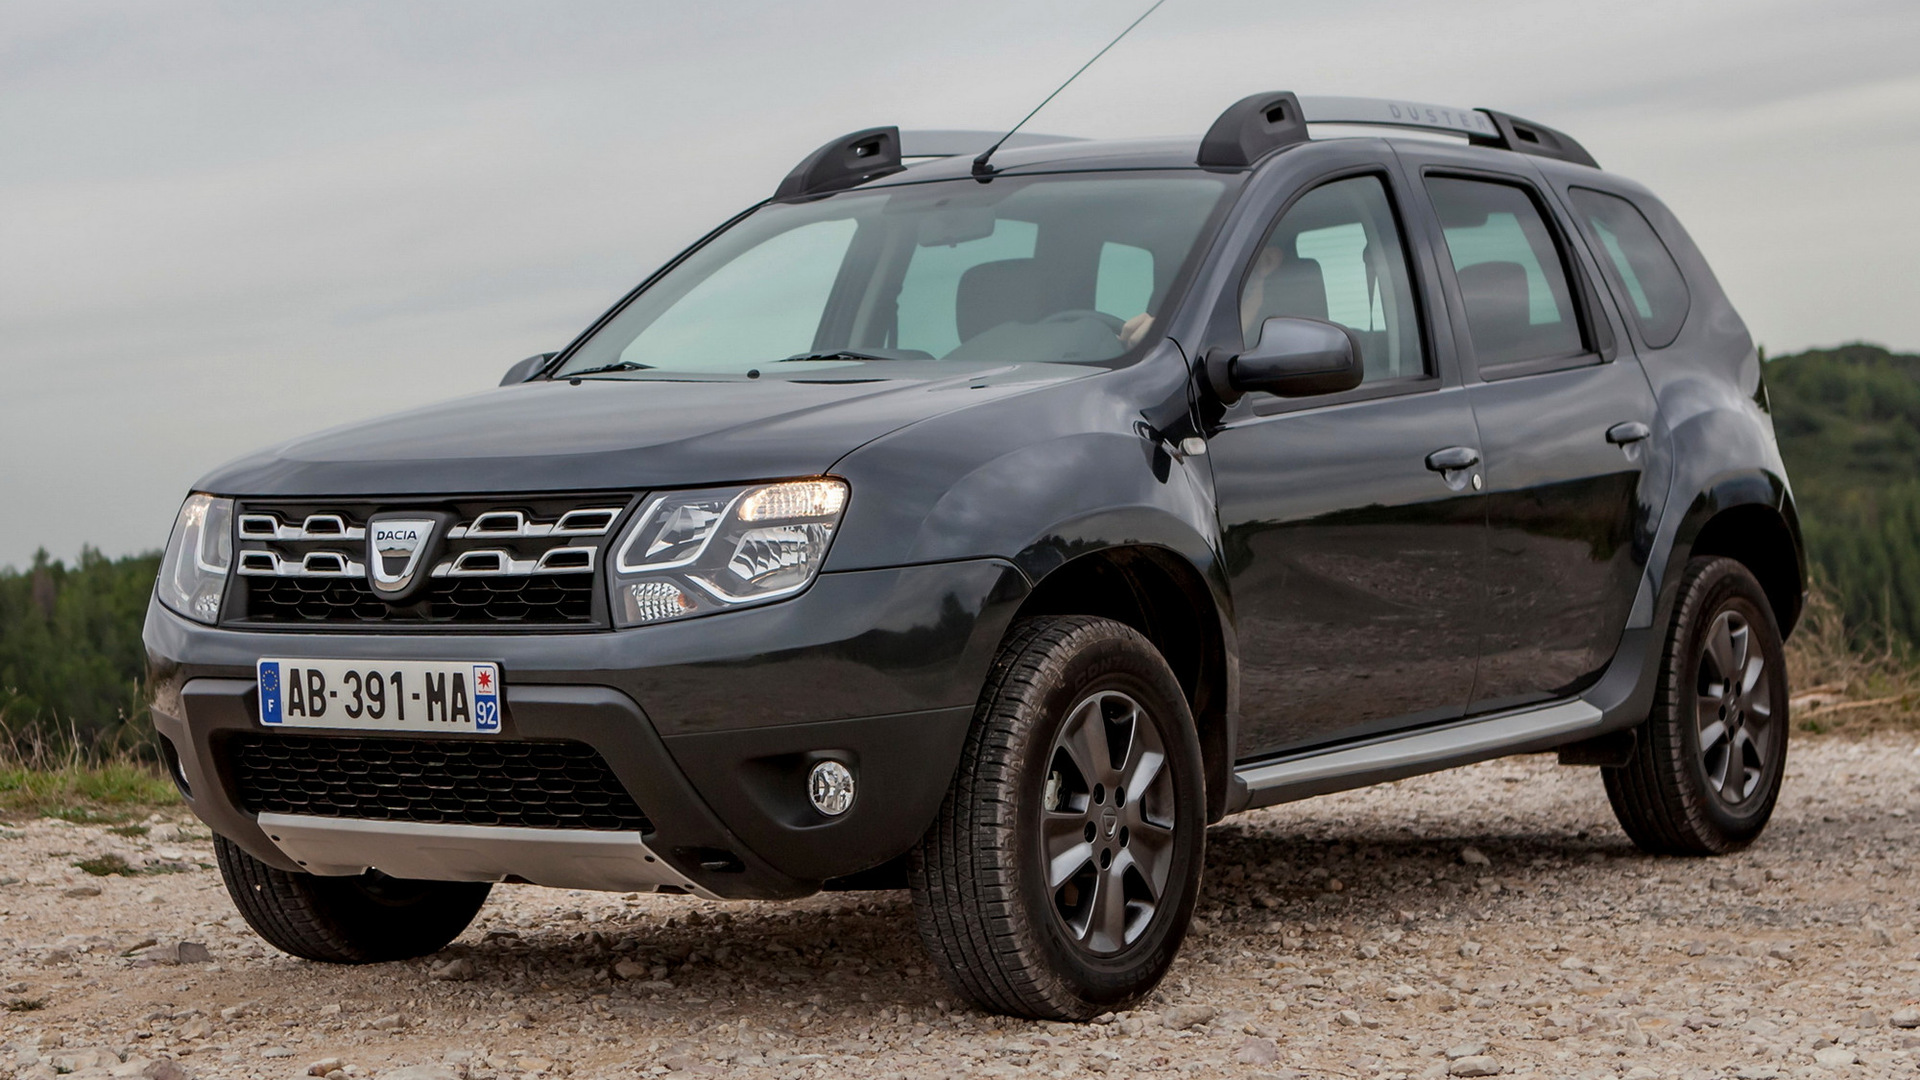 dacia duster 2013 wallpapers and hd images car pixel. Black Bedroom Furniture Sets. Home Design Ideas